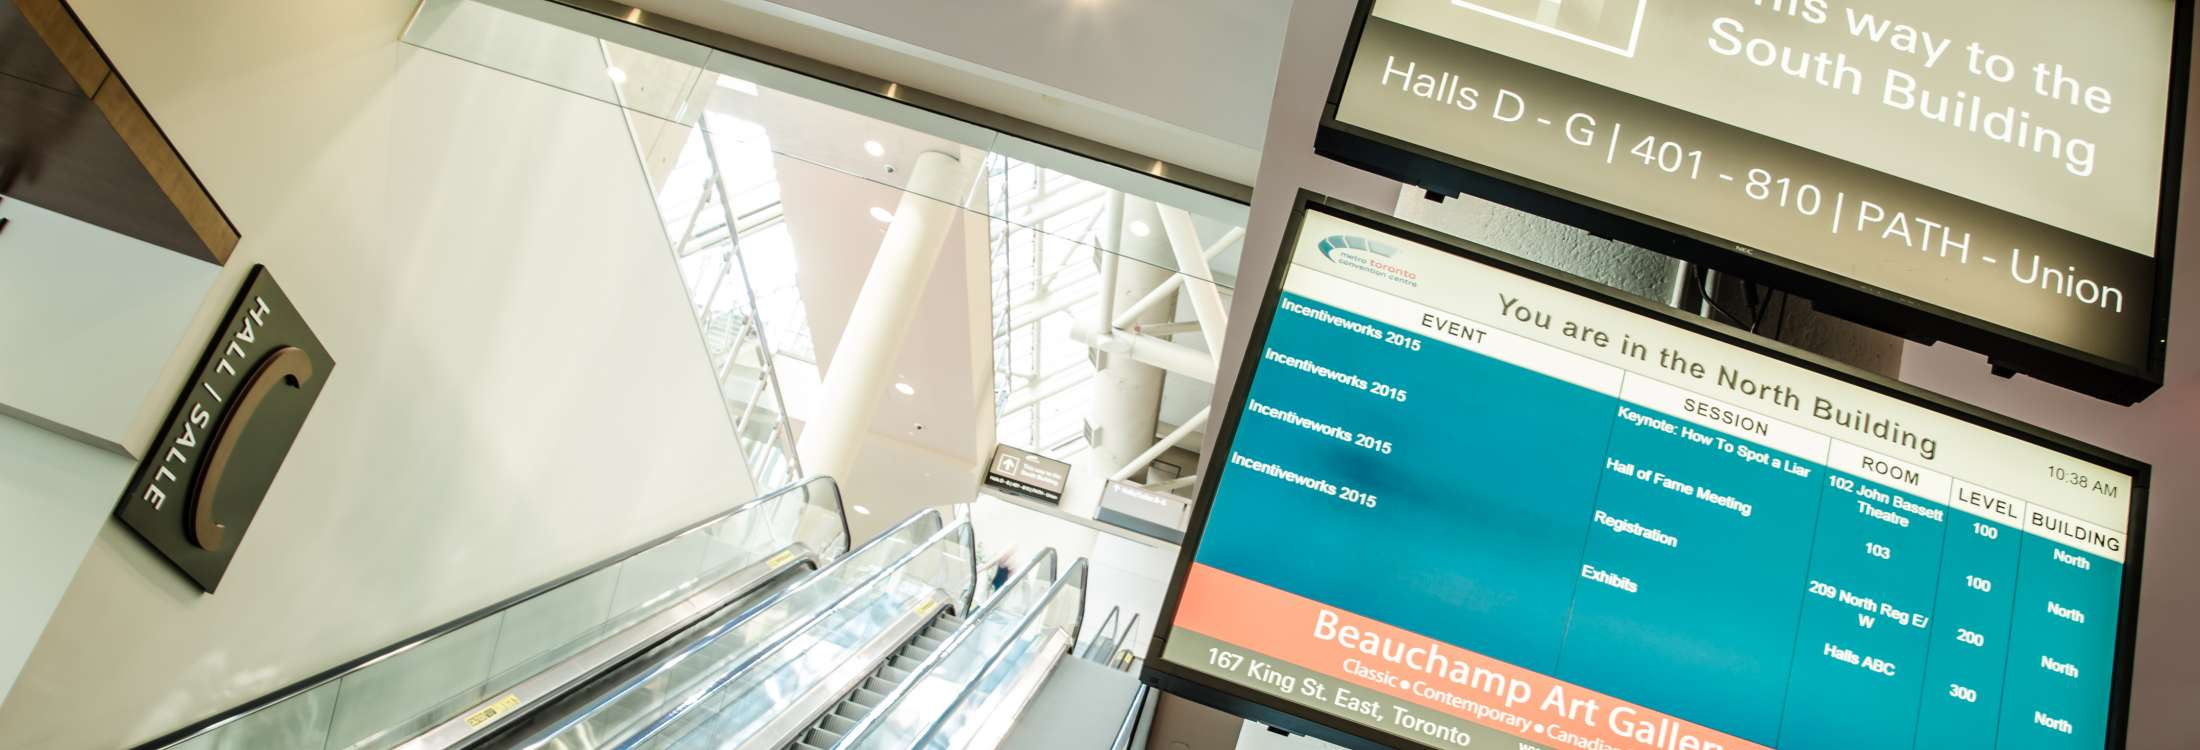 digital signage in lobby of convention center